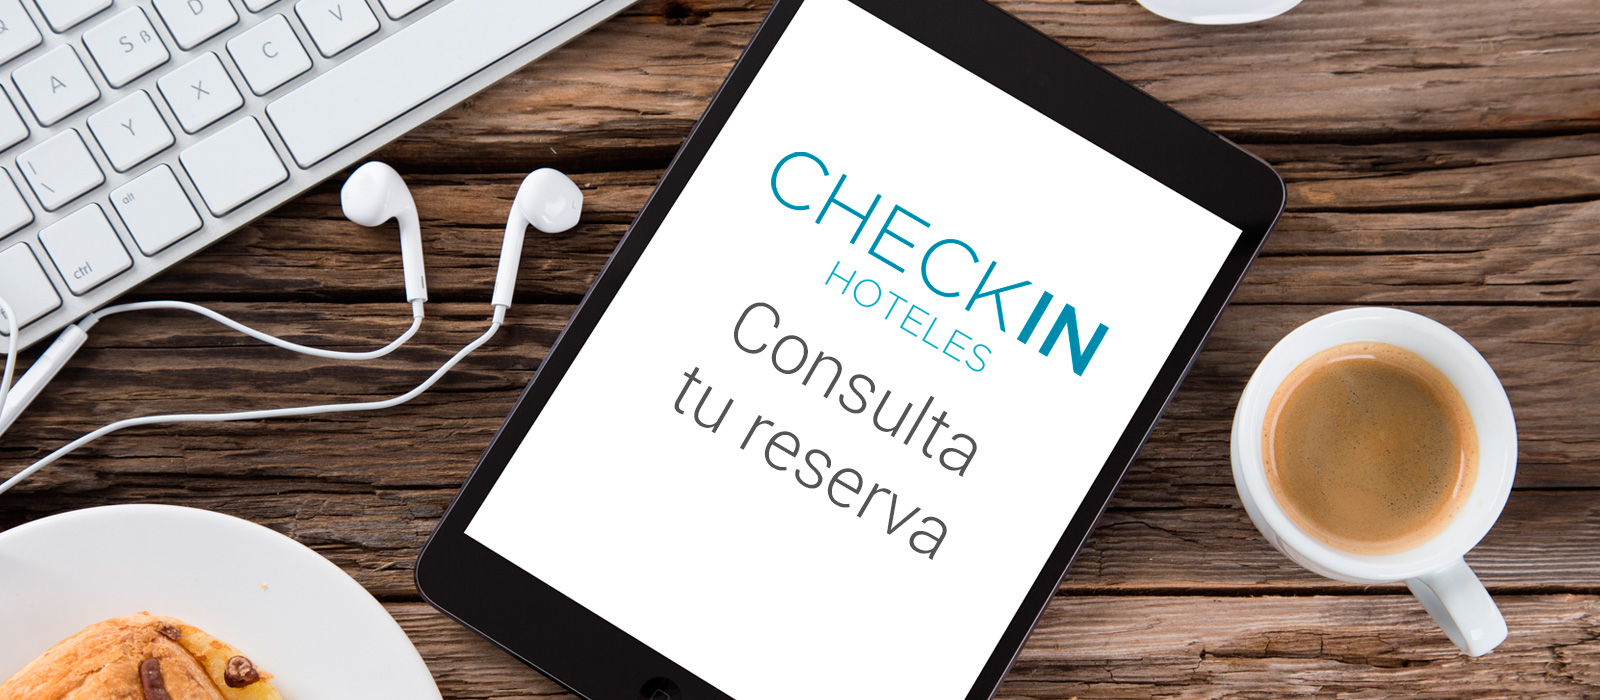 Hotel Checkin Valencia | by Checkin | Web Oficial